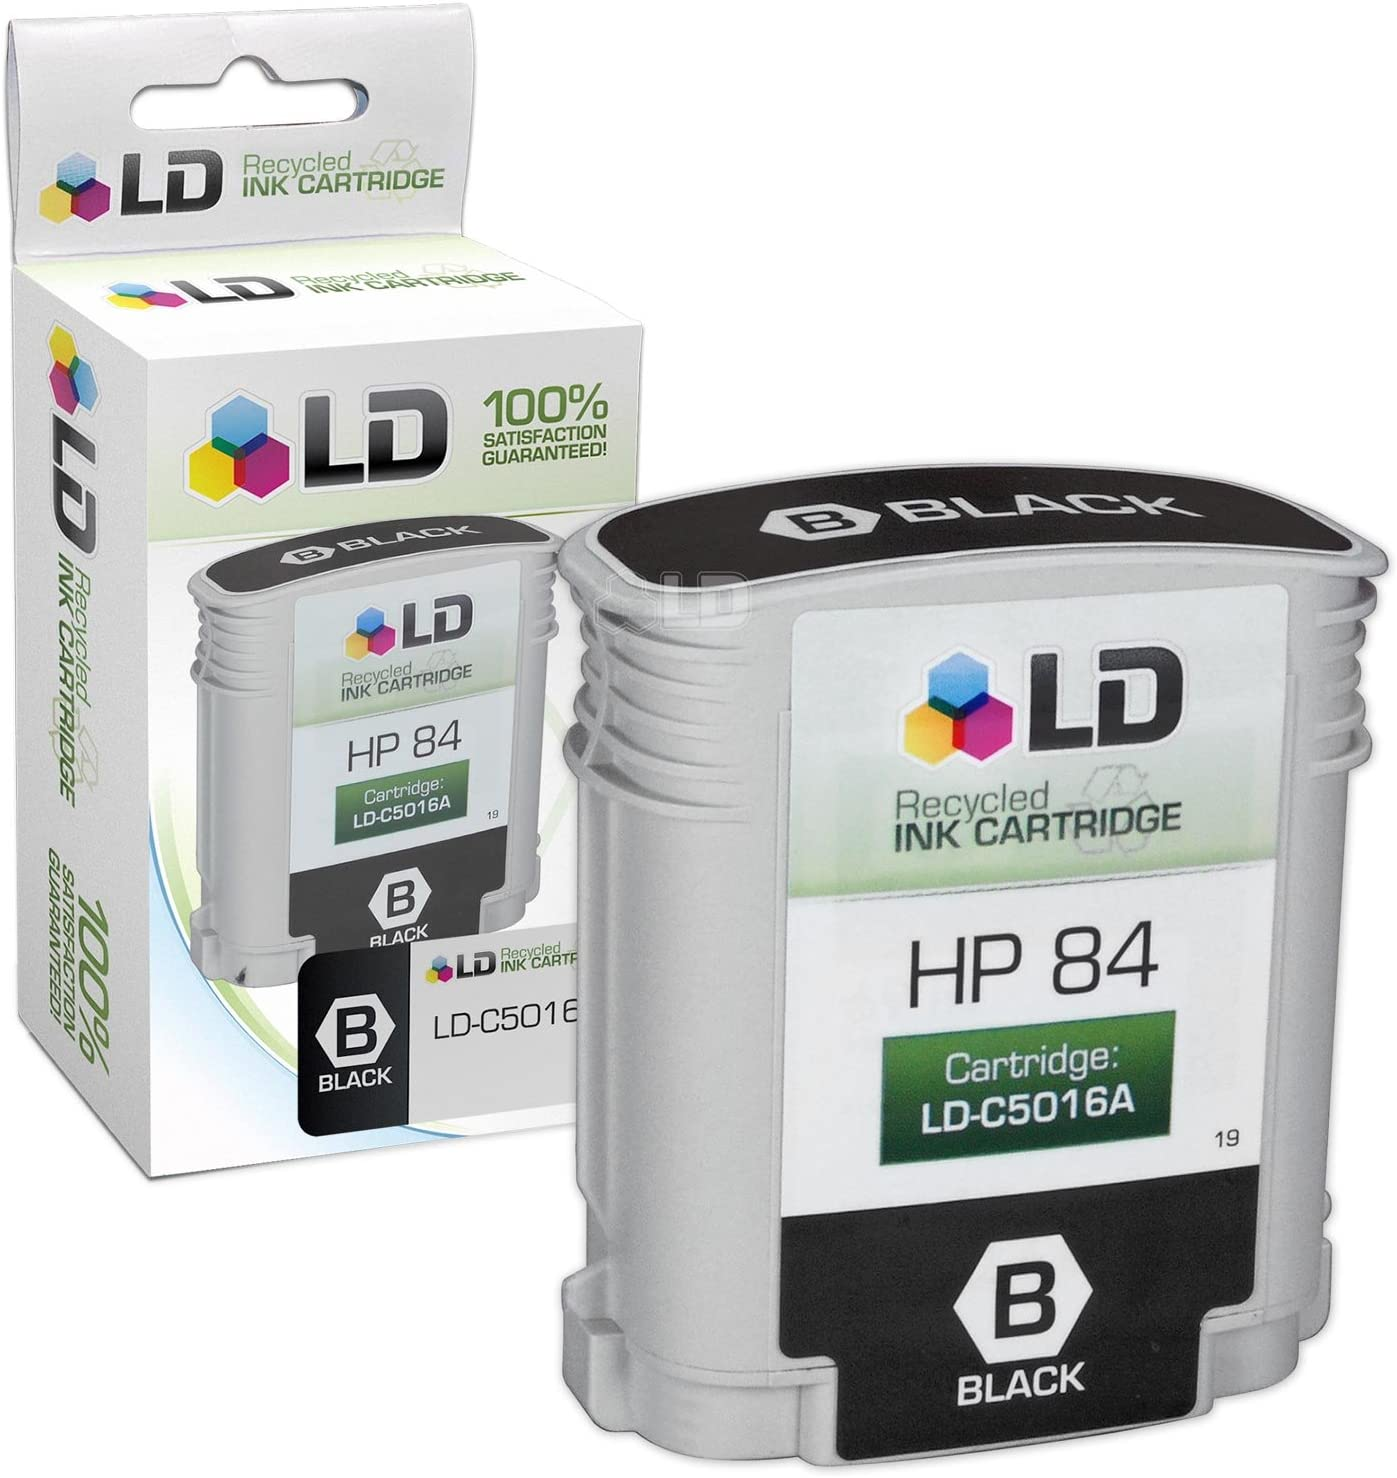 LD Remanufactured Ink Cartridge Replacement for HP 84 C5016A (Black)